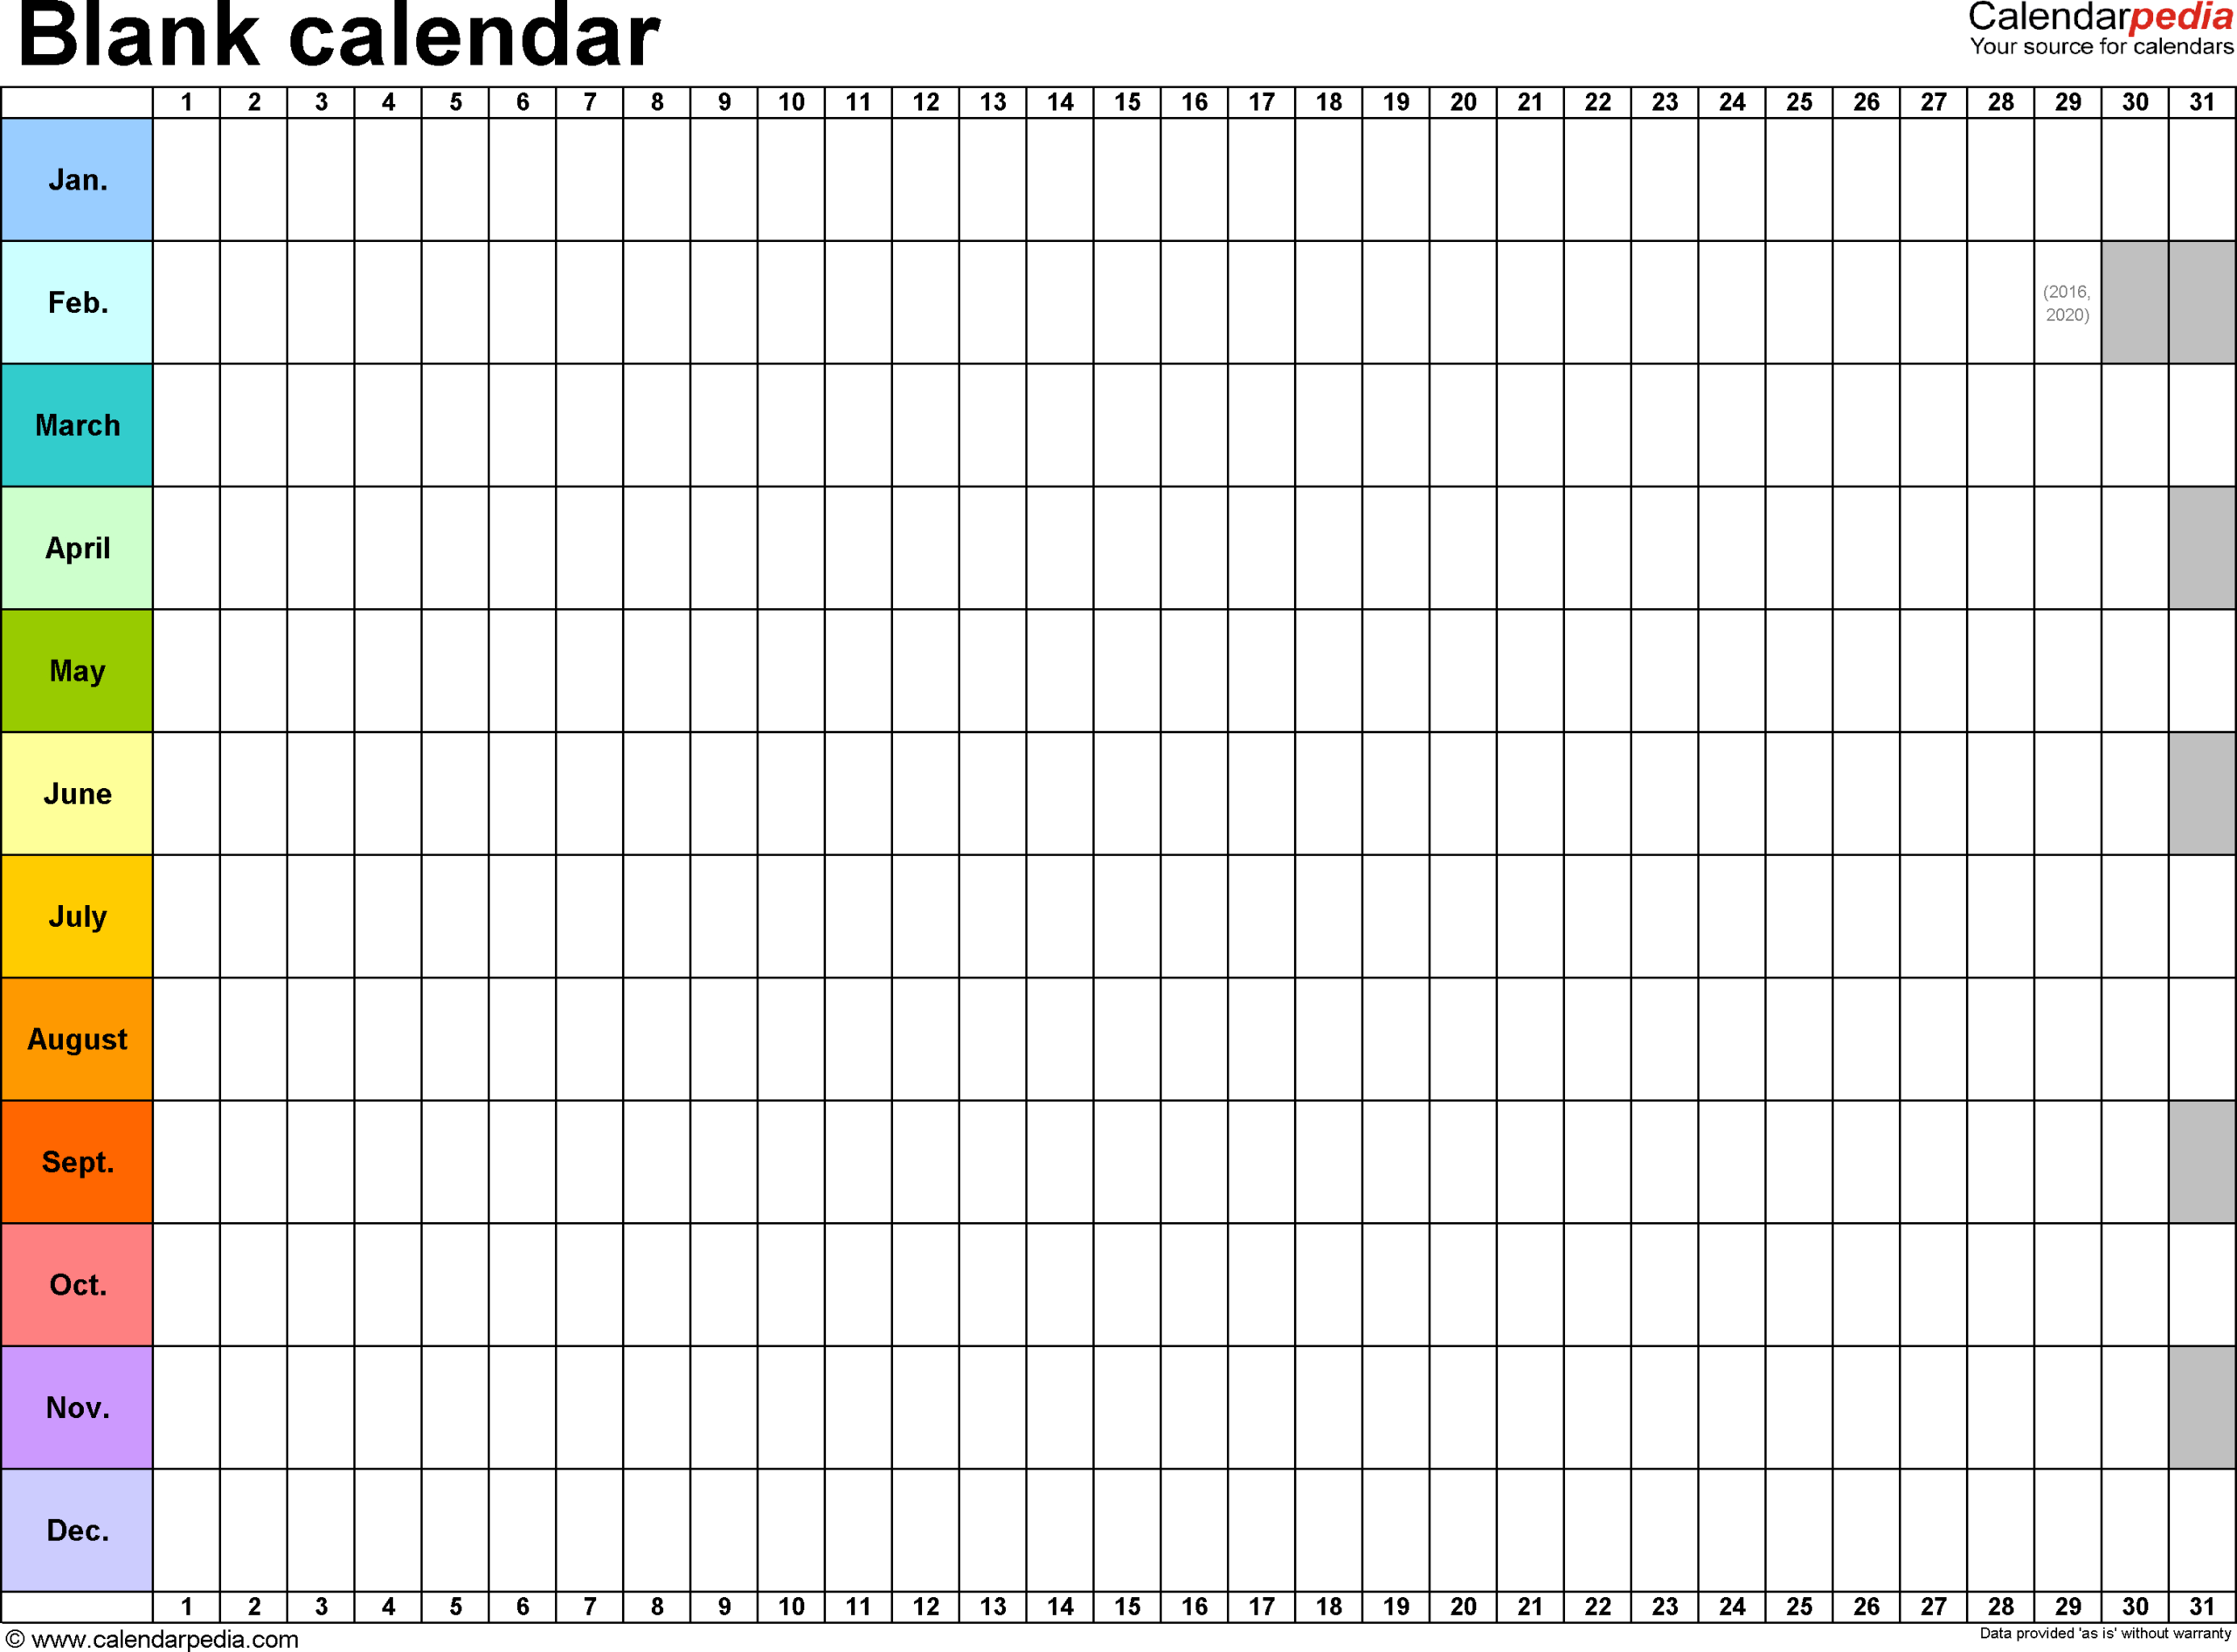 Blank Calendar Print Out | Blank Calendar Template pertaining to Blank Monthly Calendar With Lines